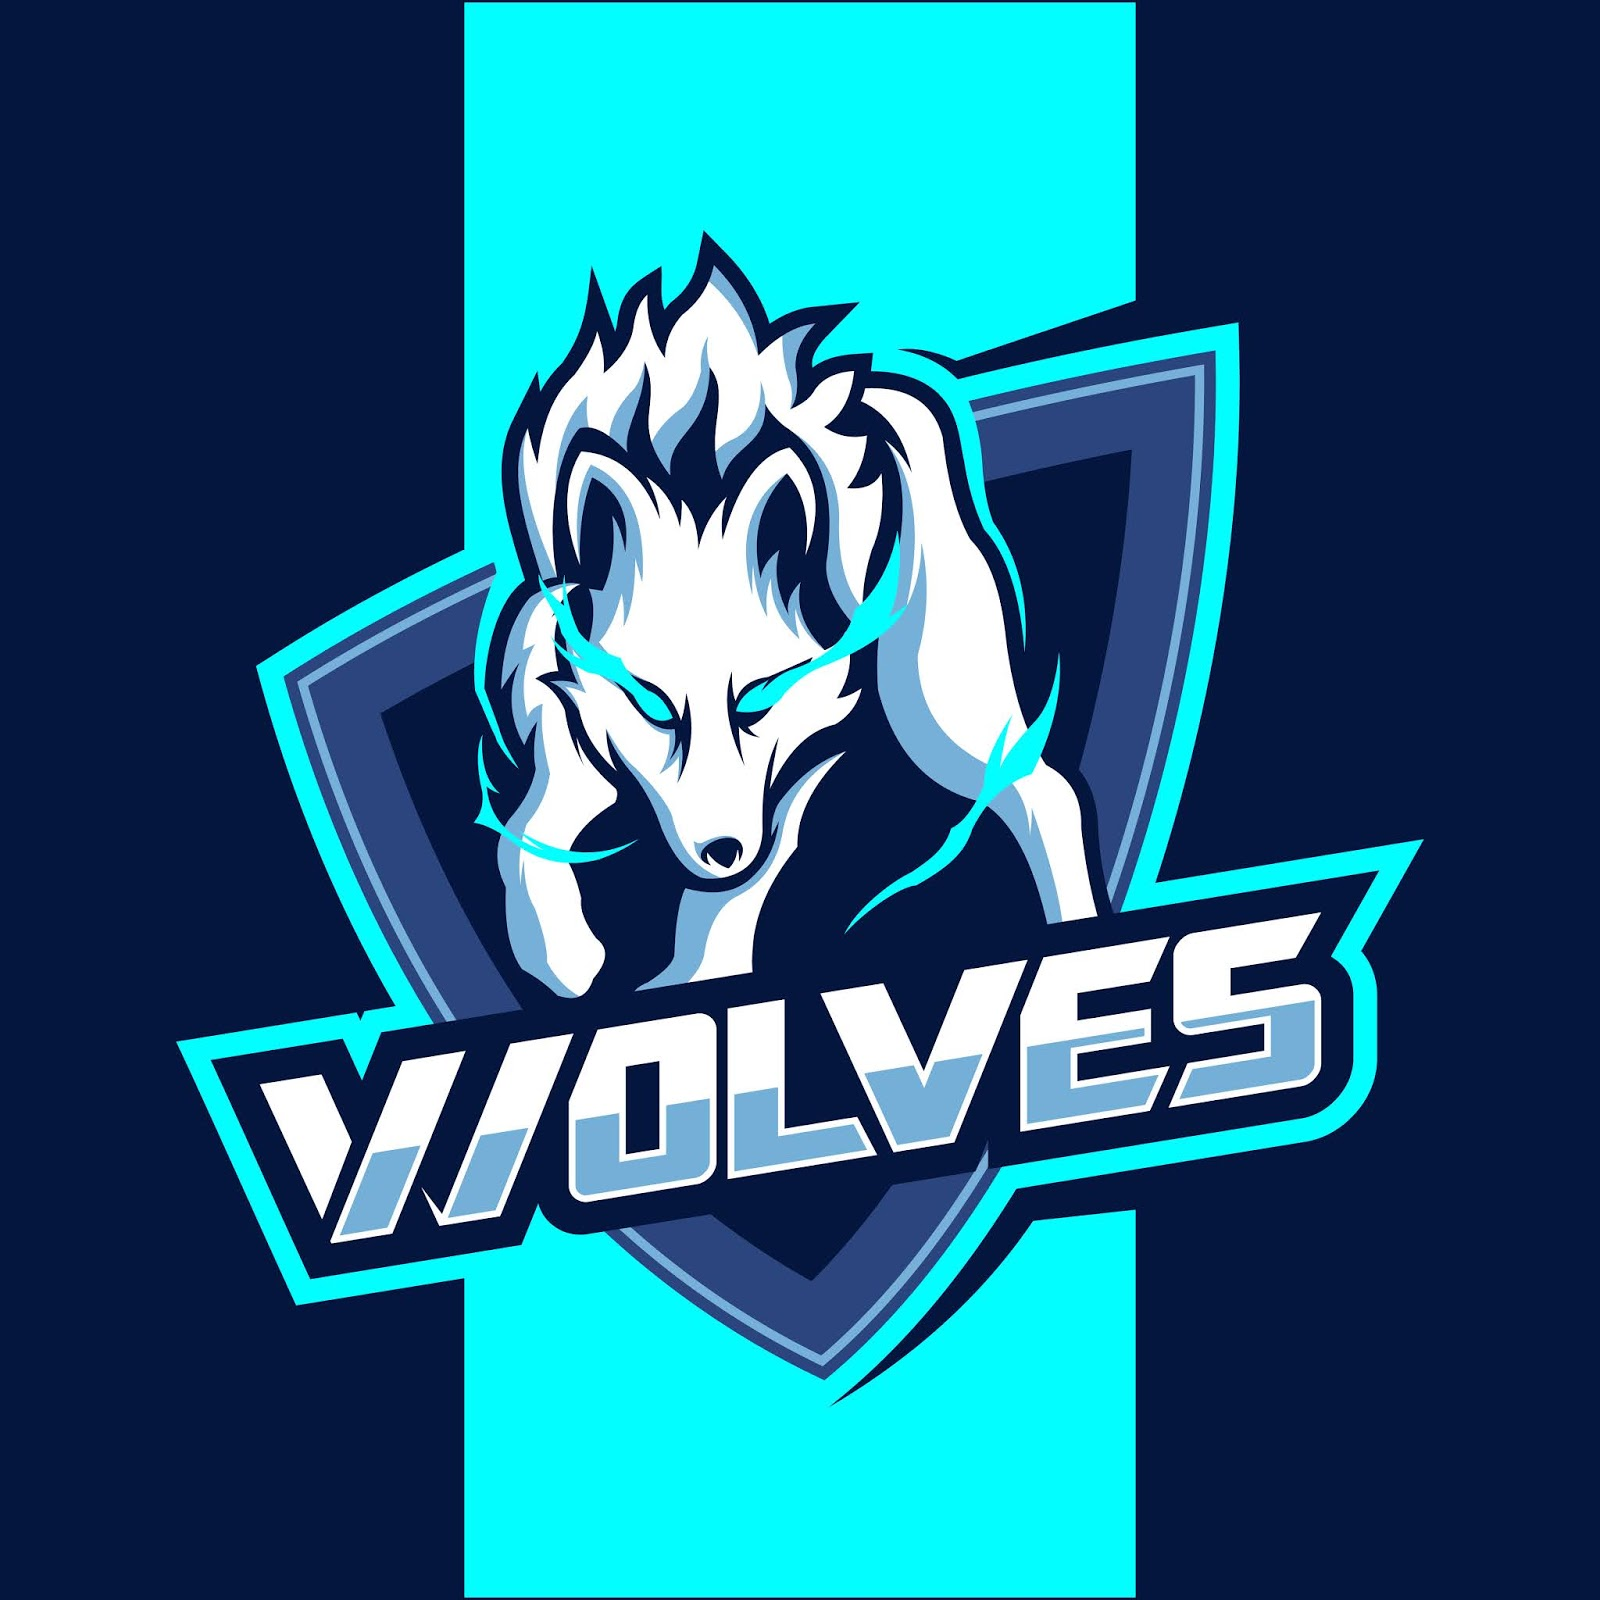 White Wolves Mascot Esport Logo Design Free Download Vector CDR, AI, EPS and PNG Formats